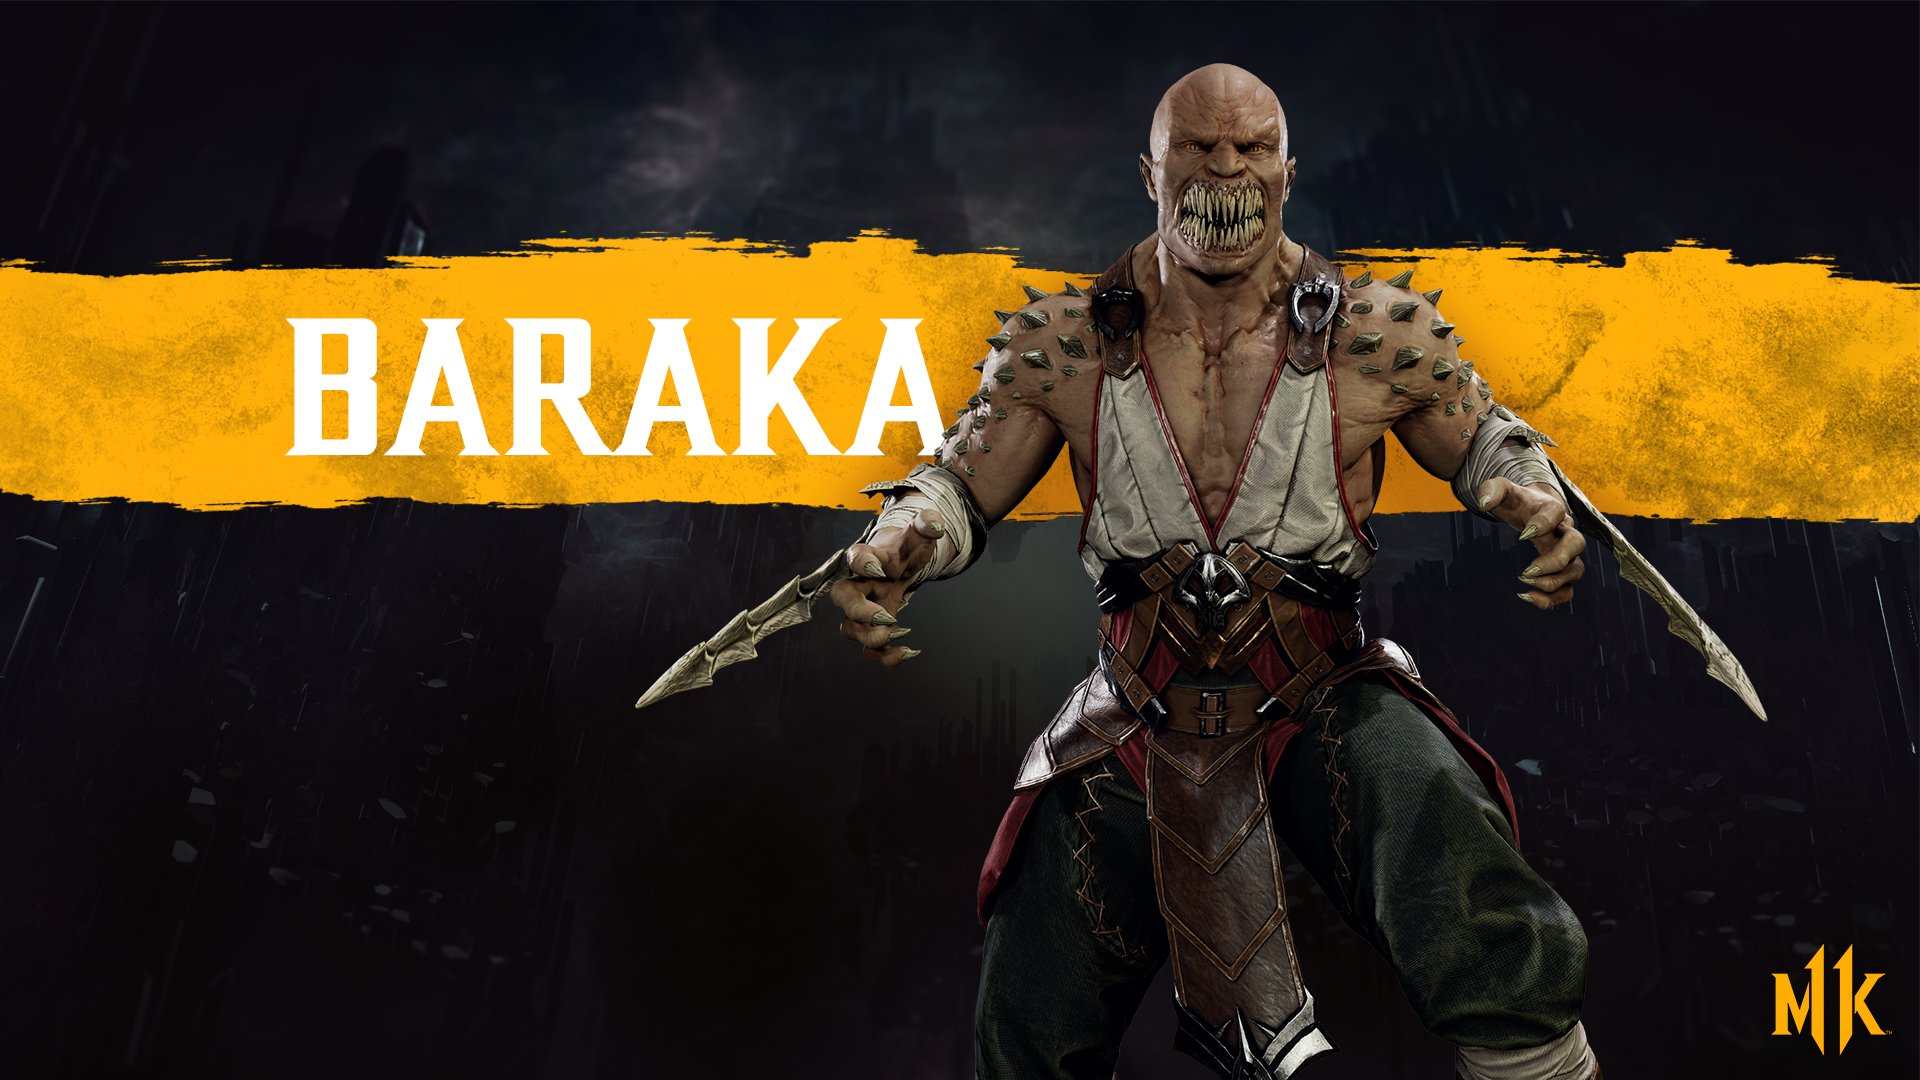 Mortal Kombat 11 wallpaper - Baraka